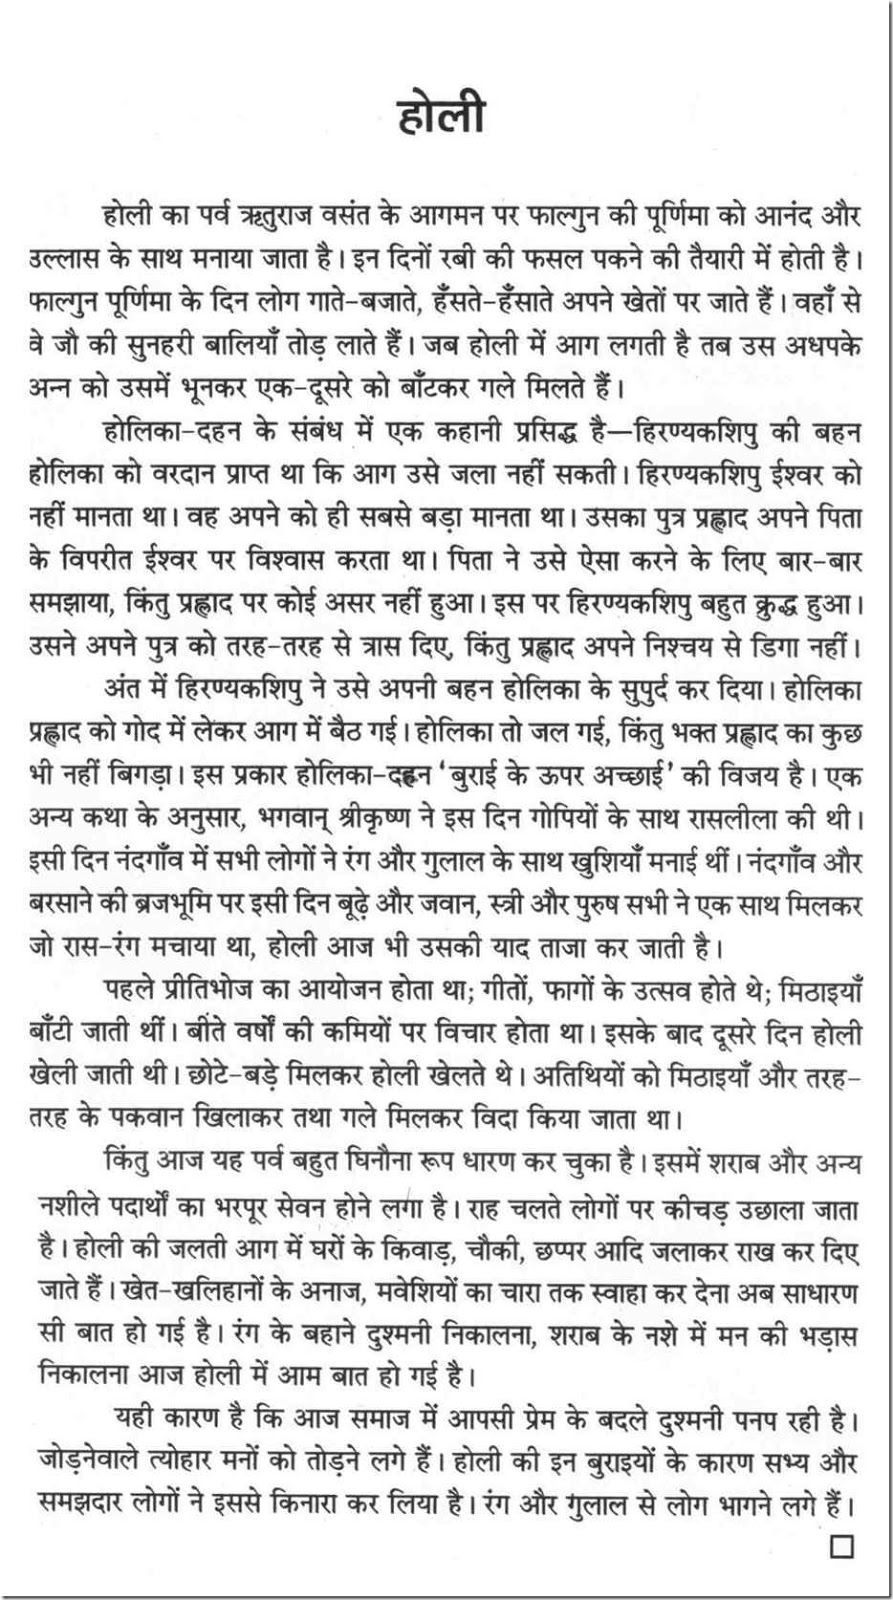 006 Cleanliness Essay In Hindi Example Sensational Is Godliness School Full